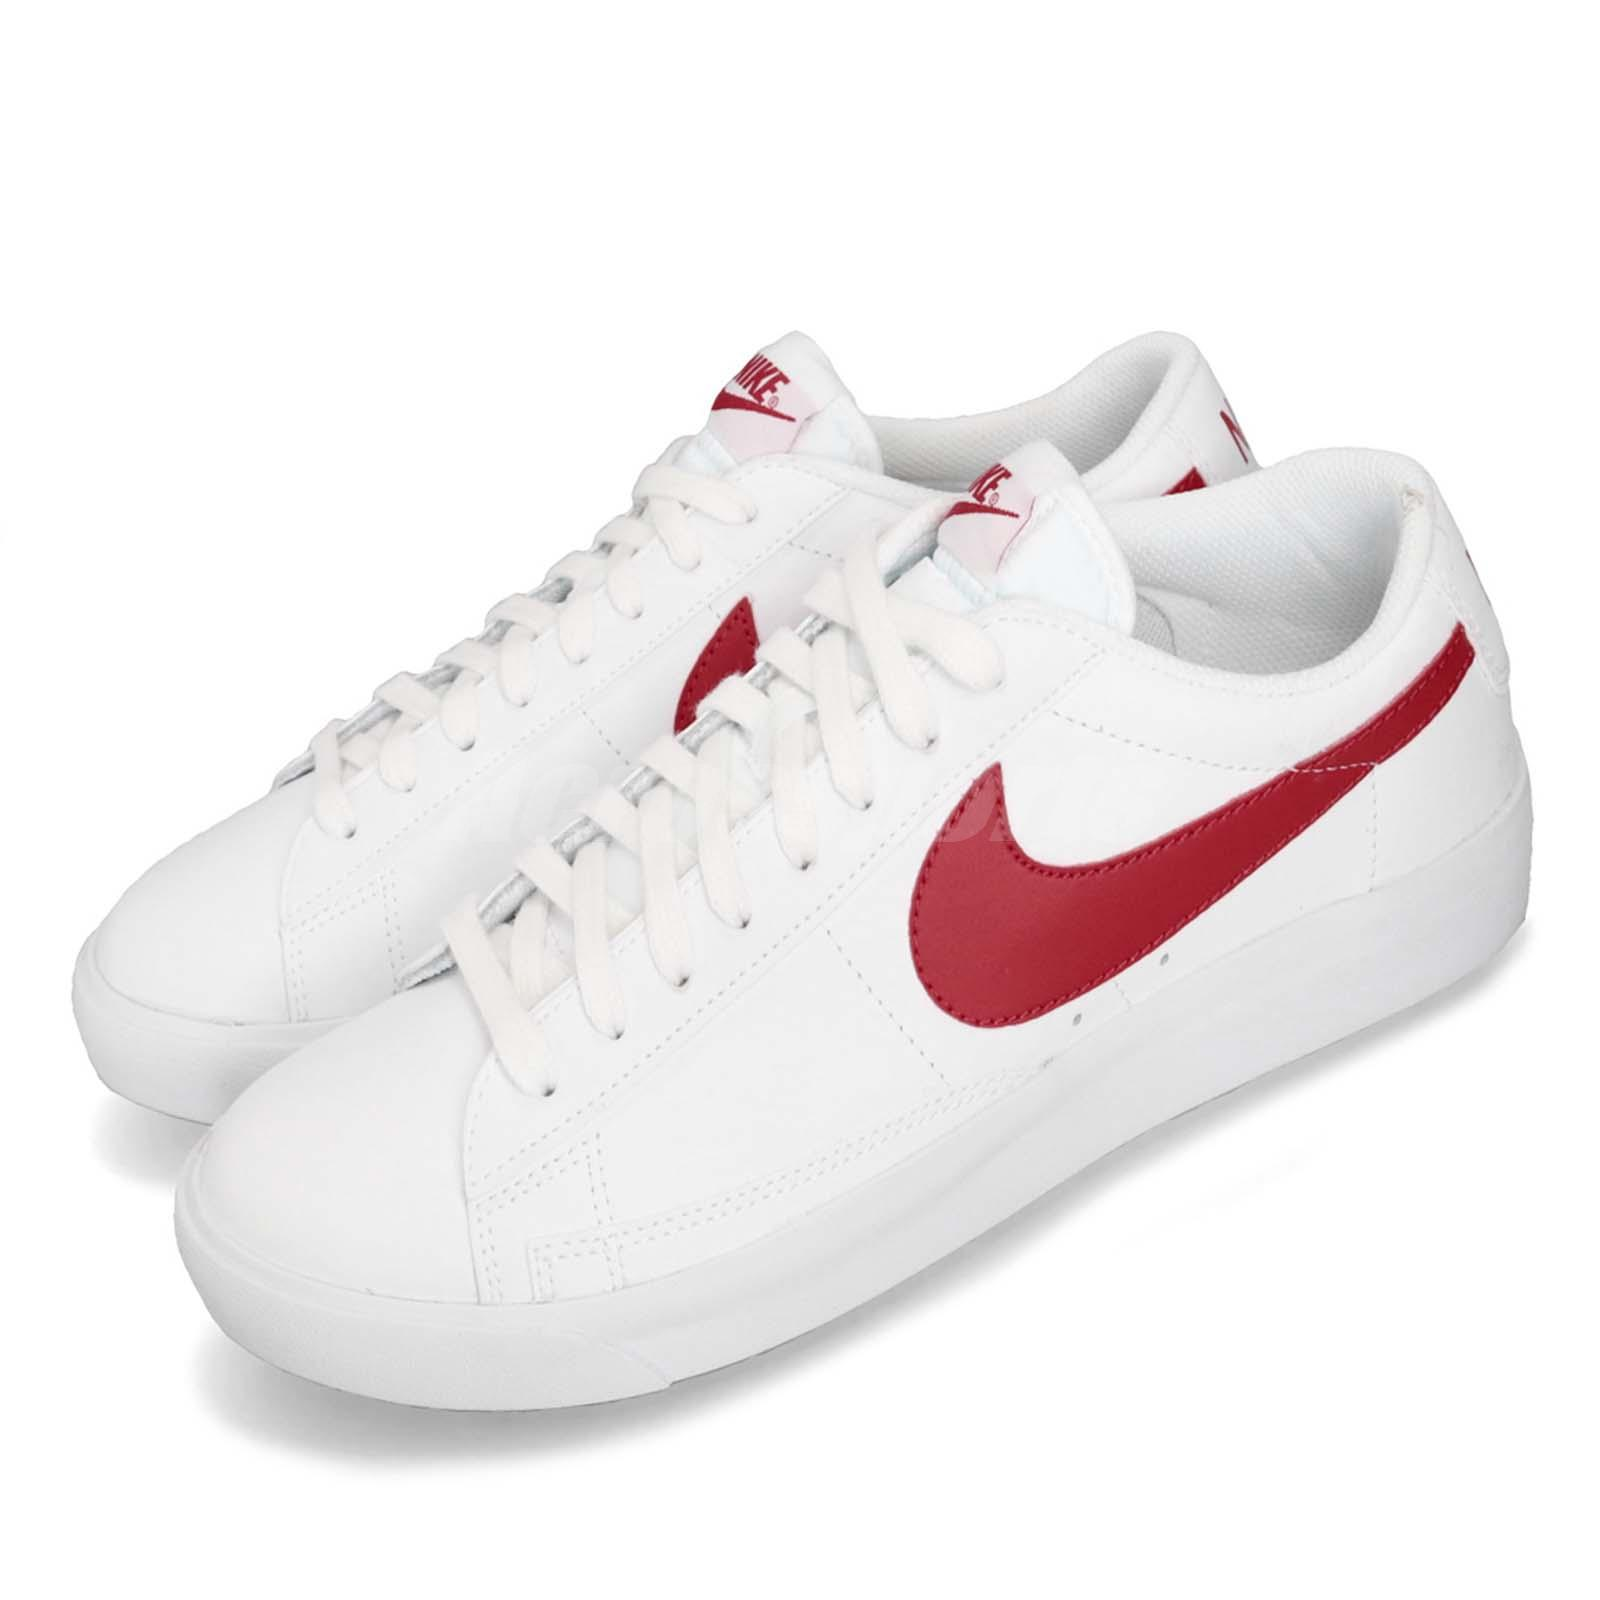 Details about Nike Blazer Low LX University Red White Men Casual Shoes  Sneakers BQ7306-600